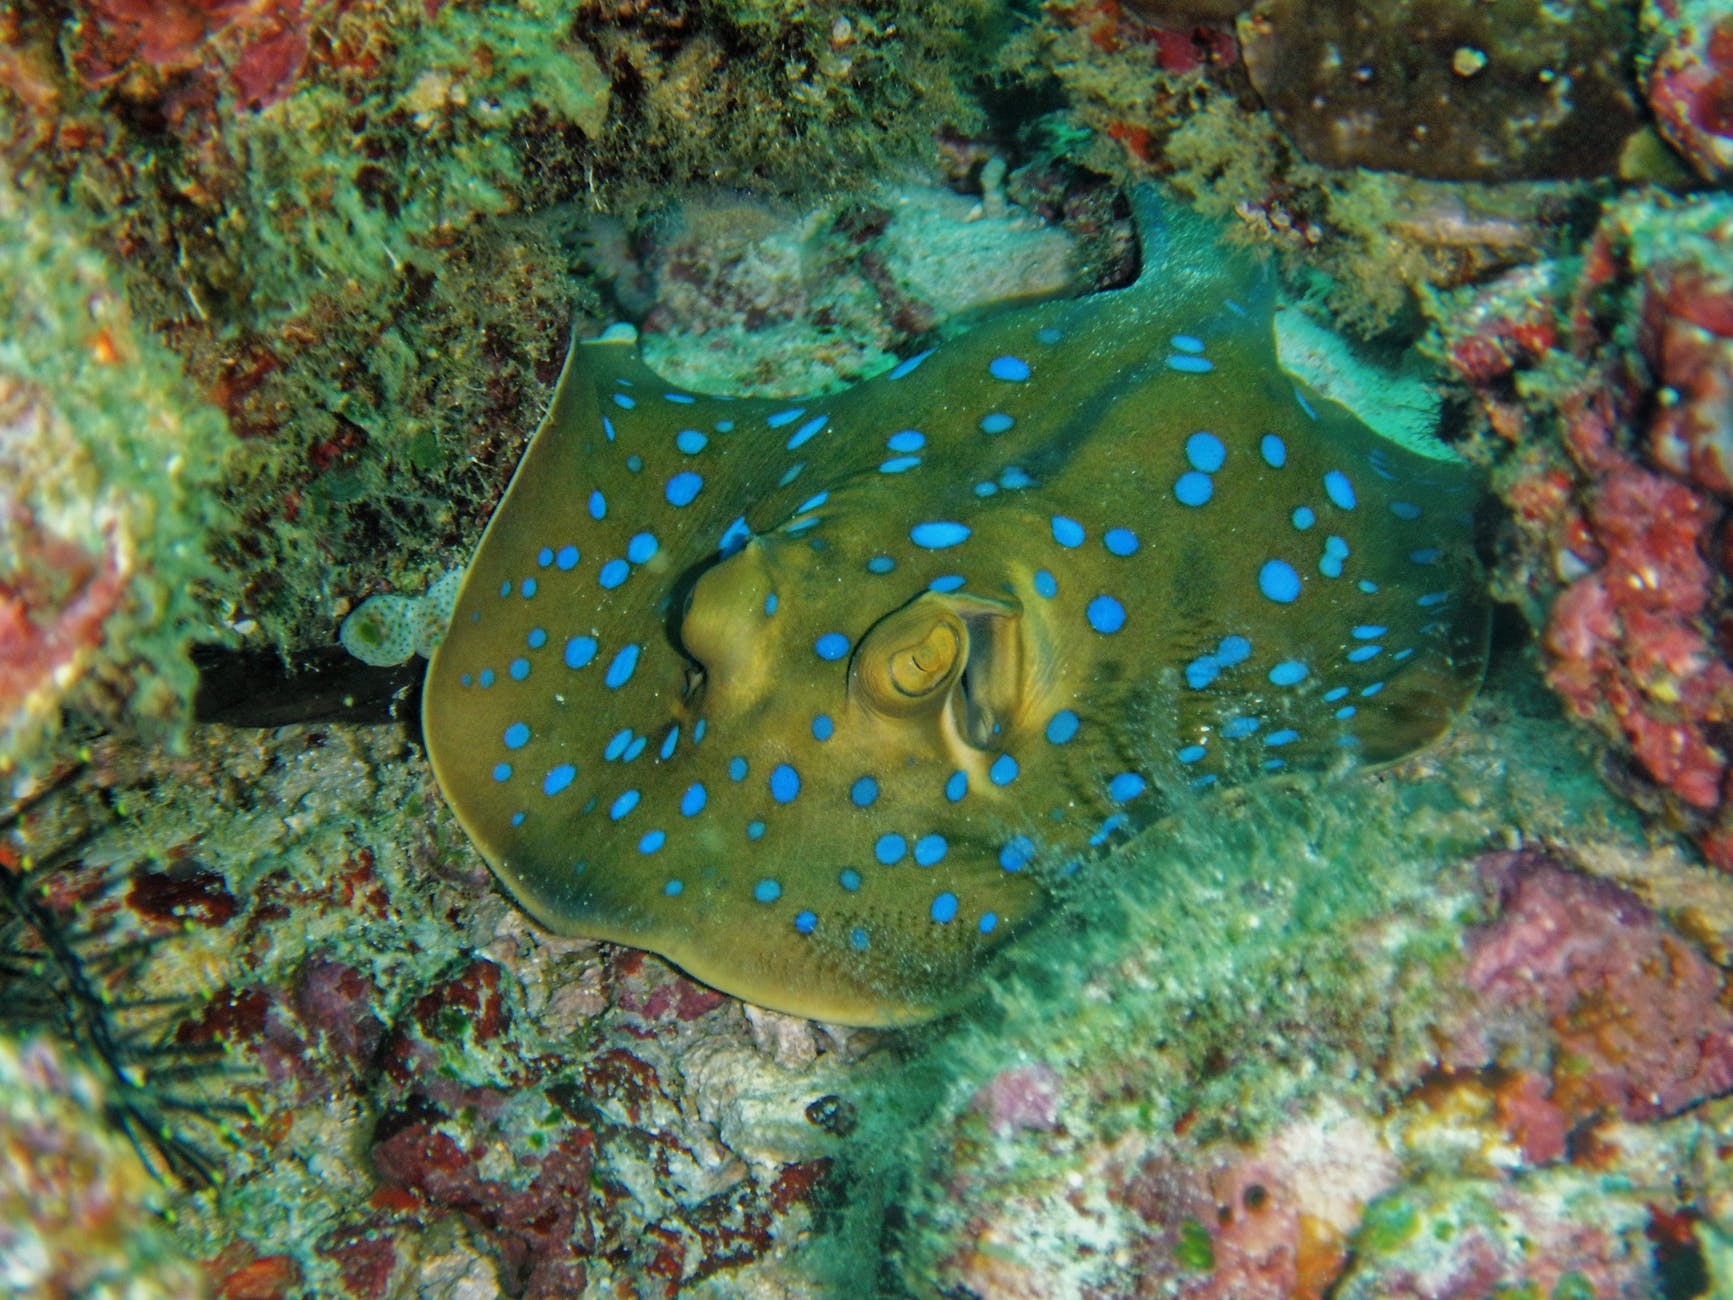 grey and blue manta ray camouflage in corals